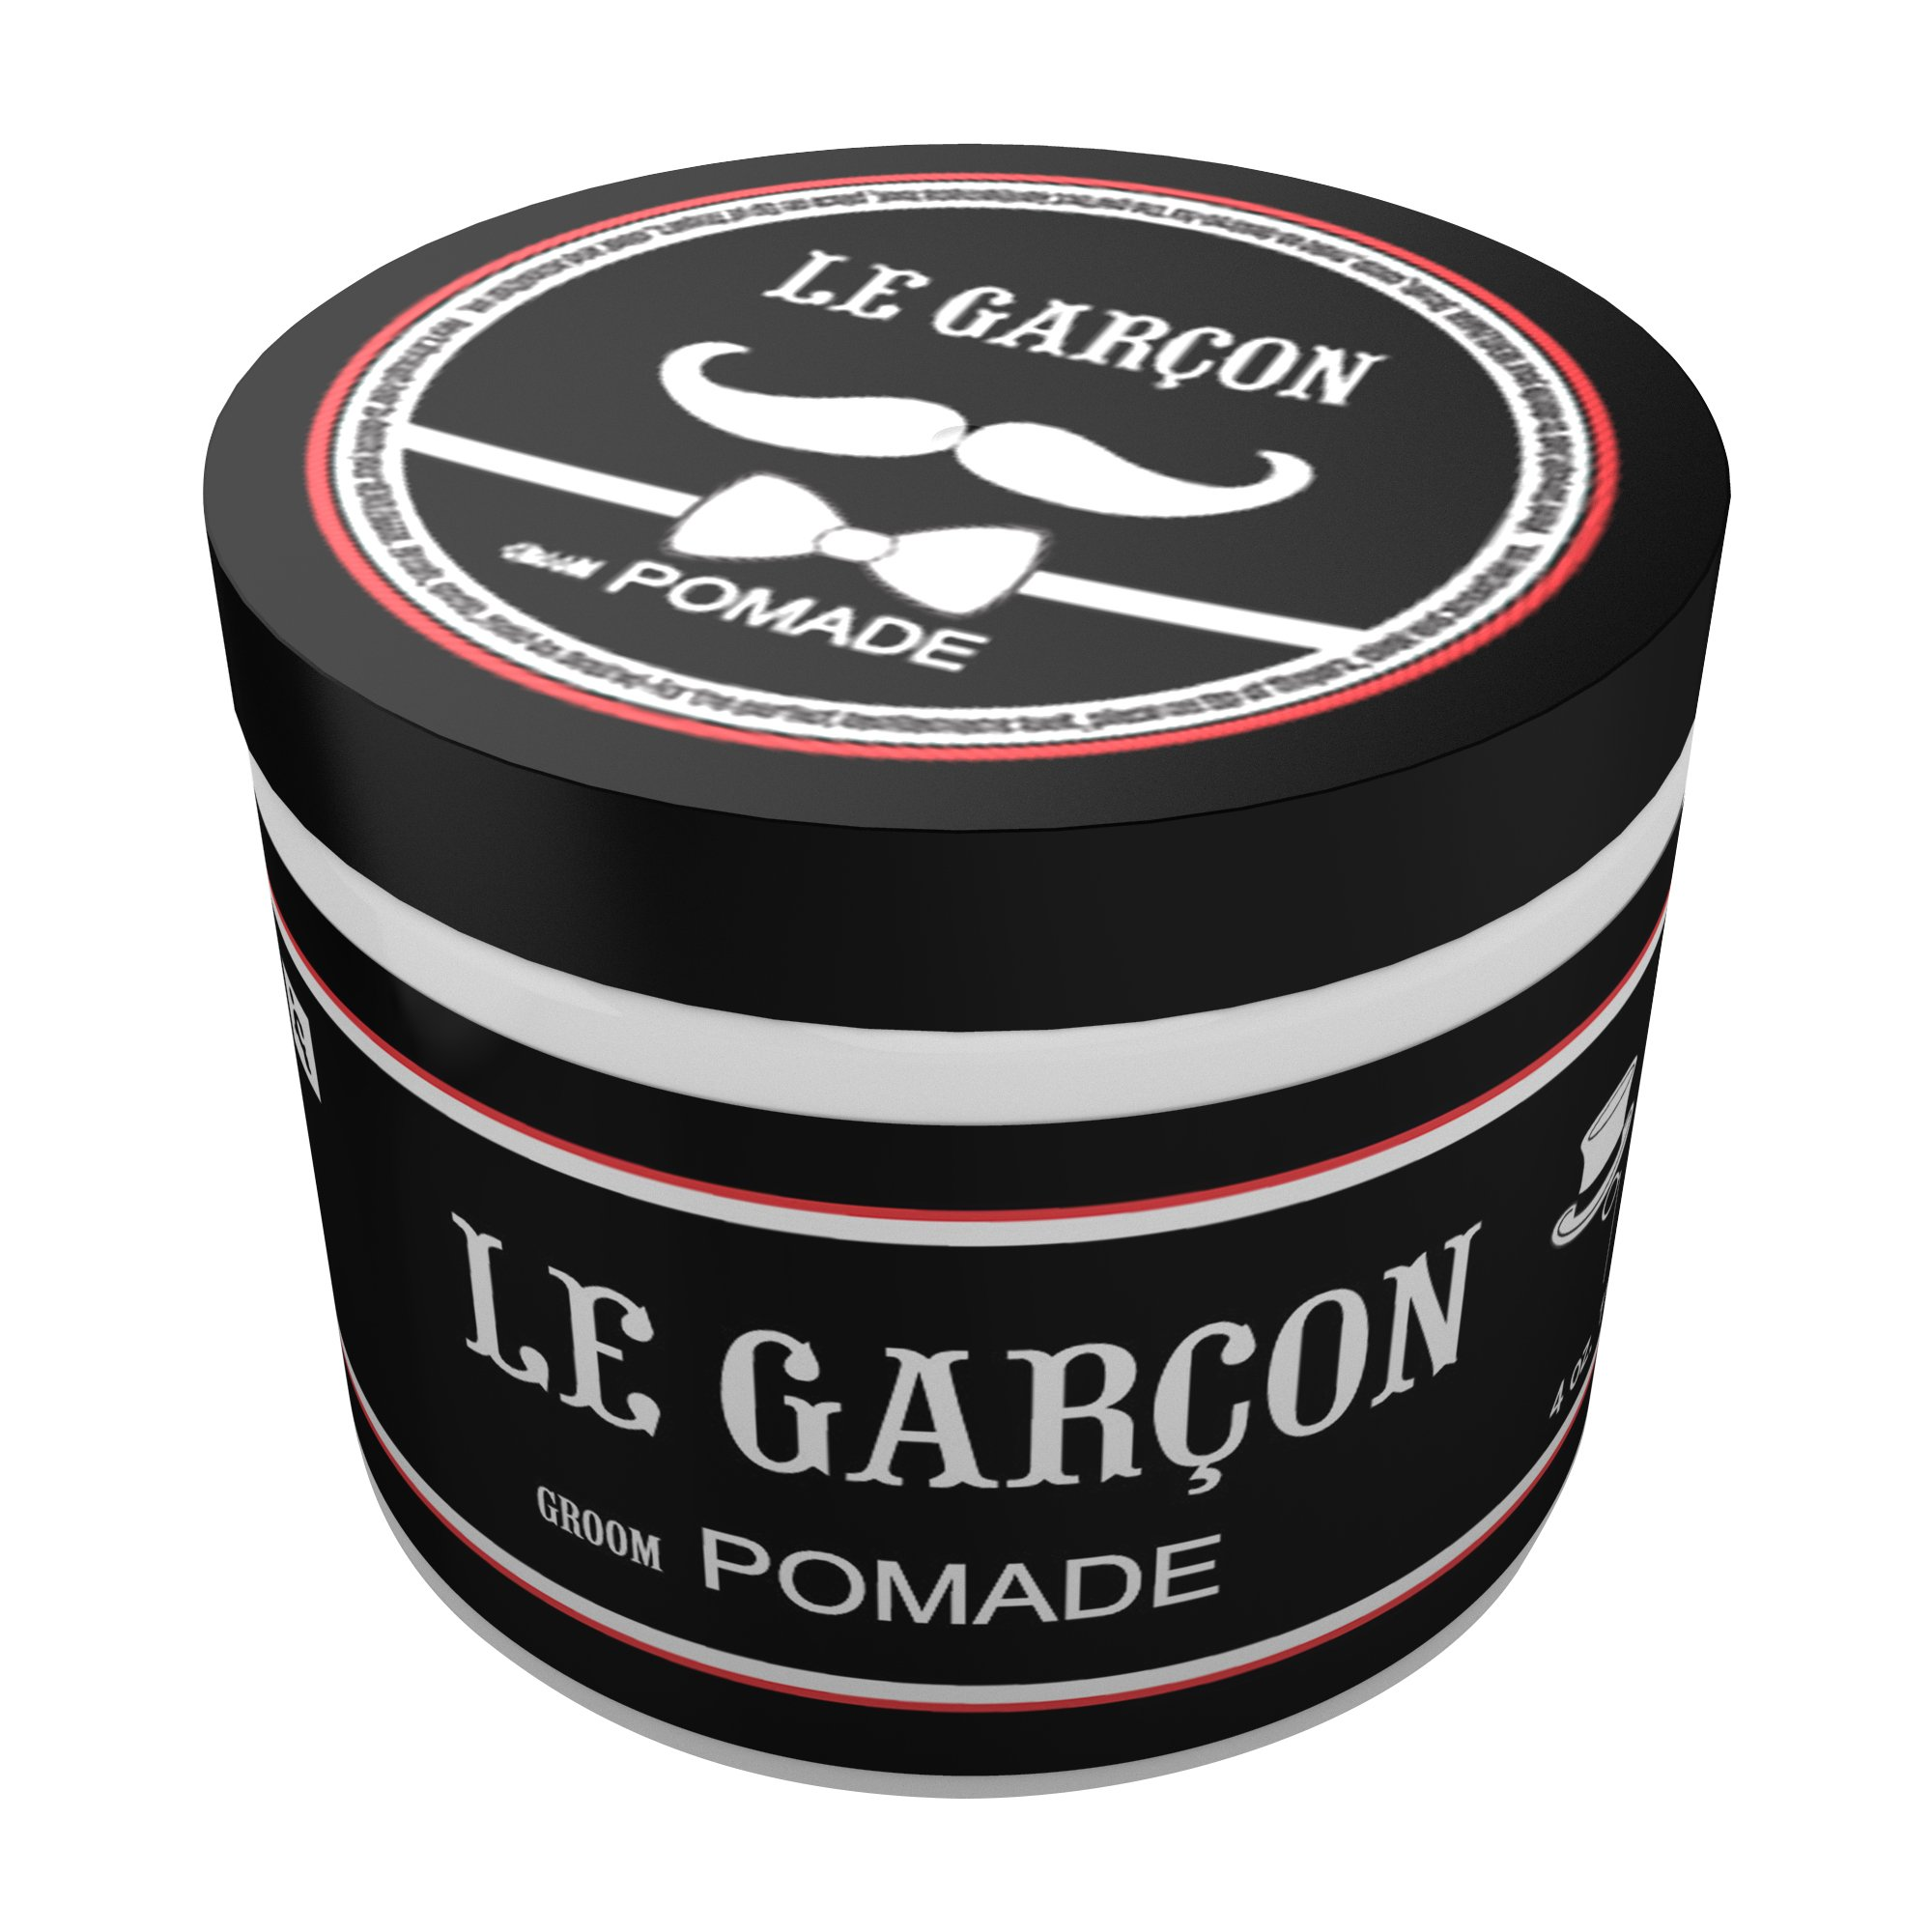 Hair Styling Pomade For Men 4oz Water Based Golden Gatsby Pompadour Style Supreme Hold Le Garcon Premium Who Refuse To Compromise Supplied In A